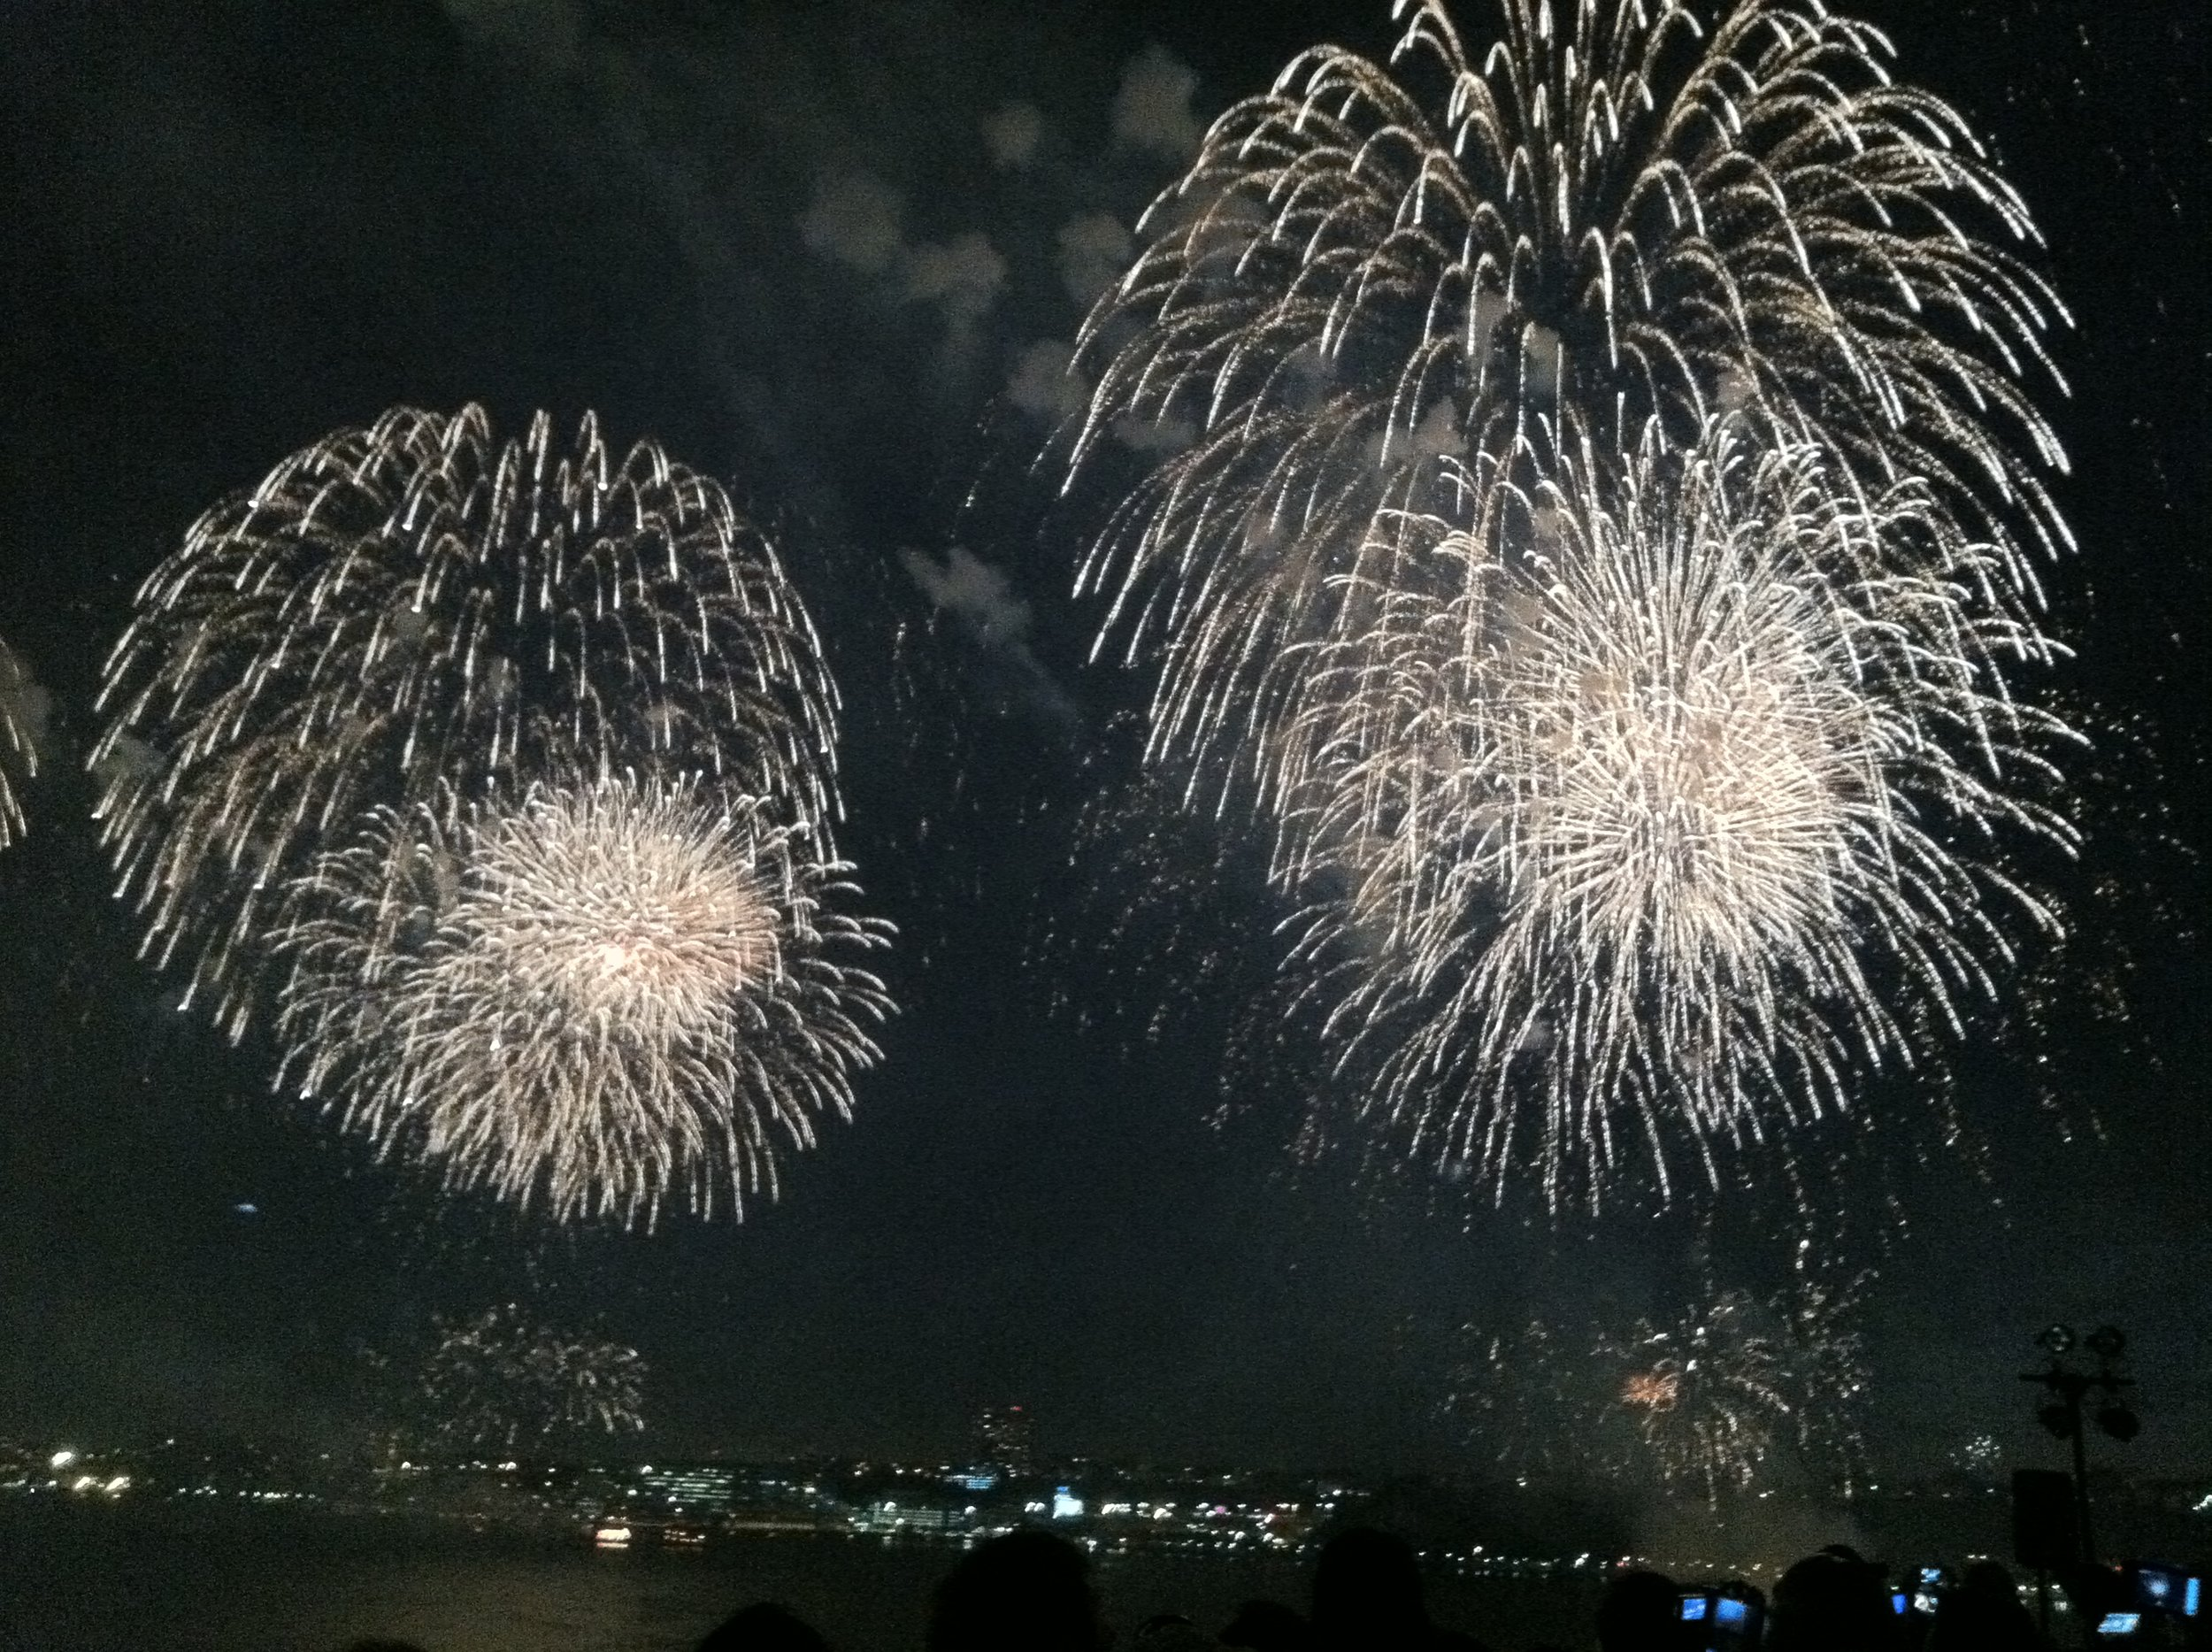 The Great Bonac Fireworks show over Three Mile Harbor in July.